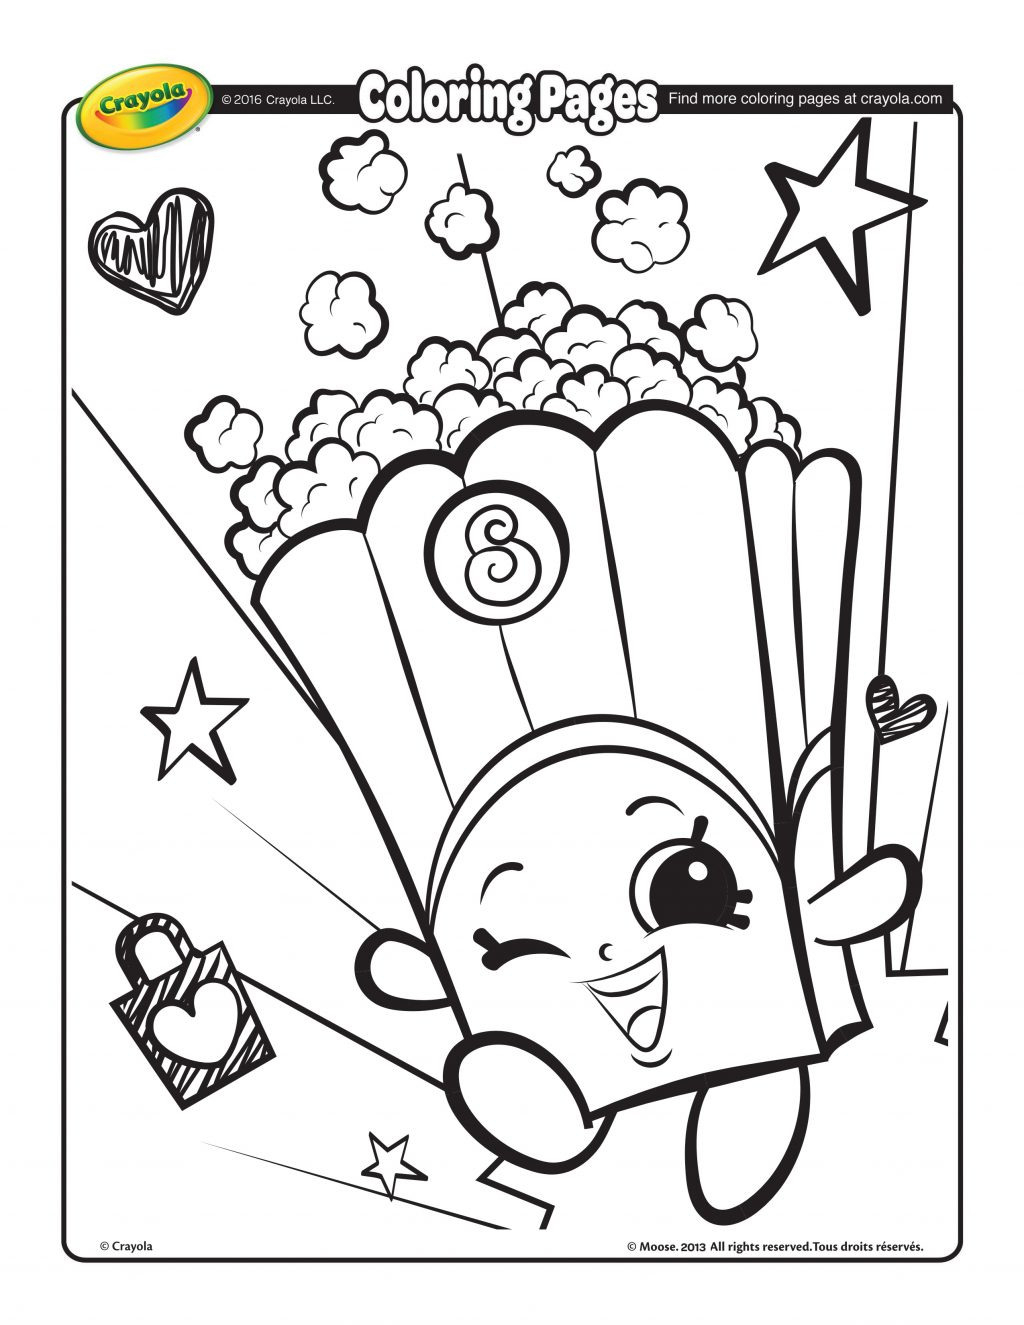 Coloring Pages Full Size Of Coloring Books Crayola